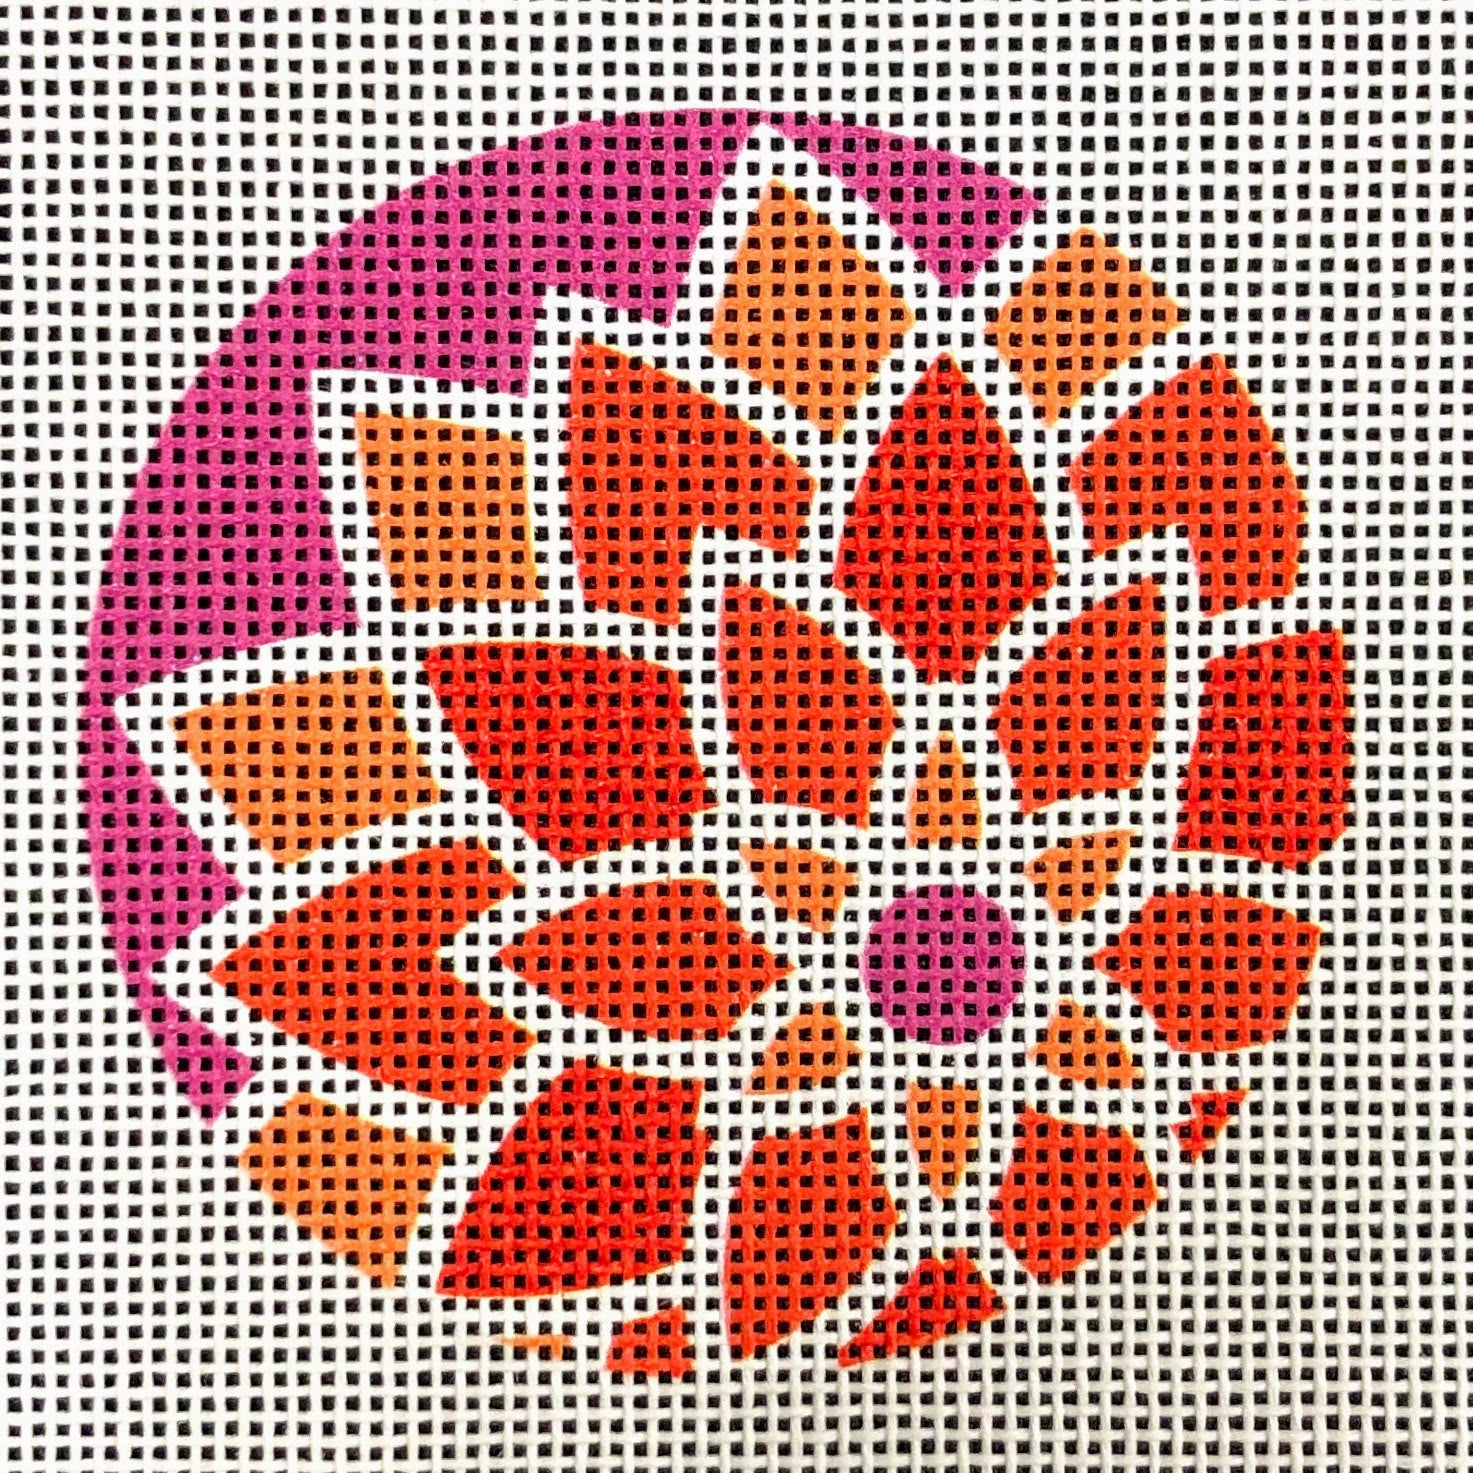 "Graphic Design Flower Orange/Purple ***Fits 3"" Round Self Finishing Items***"